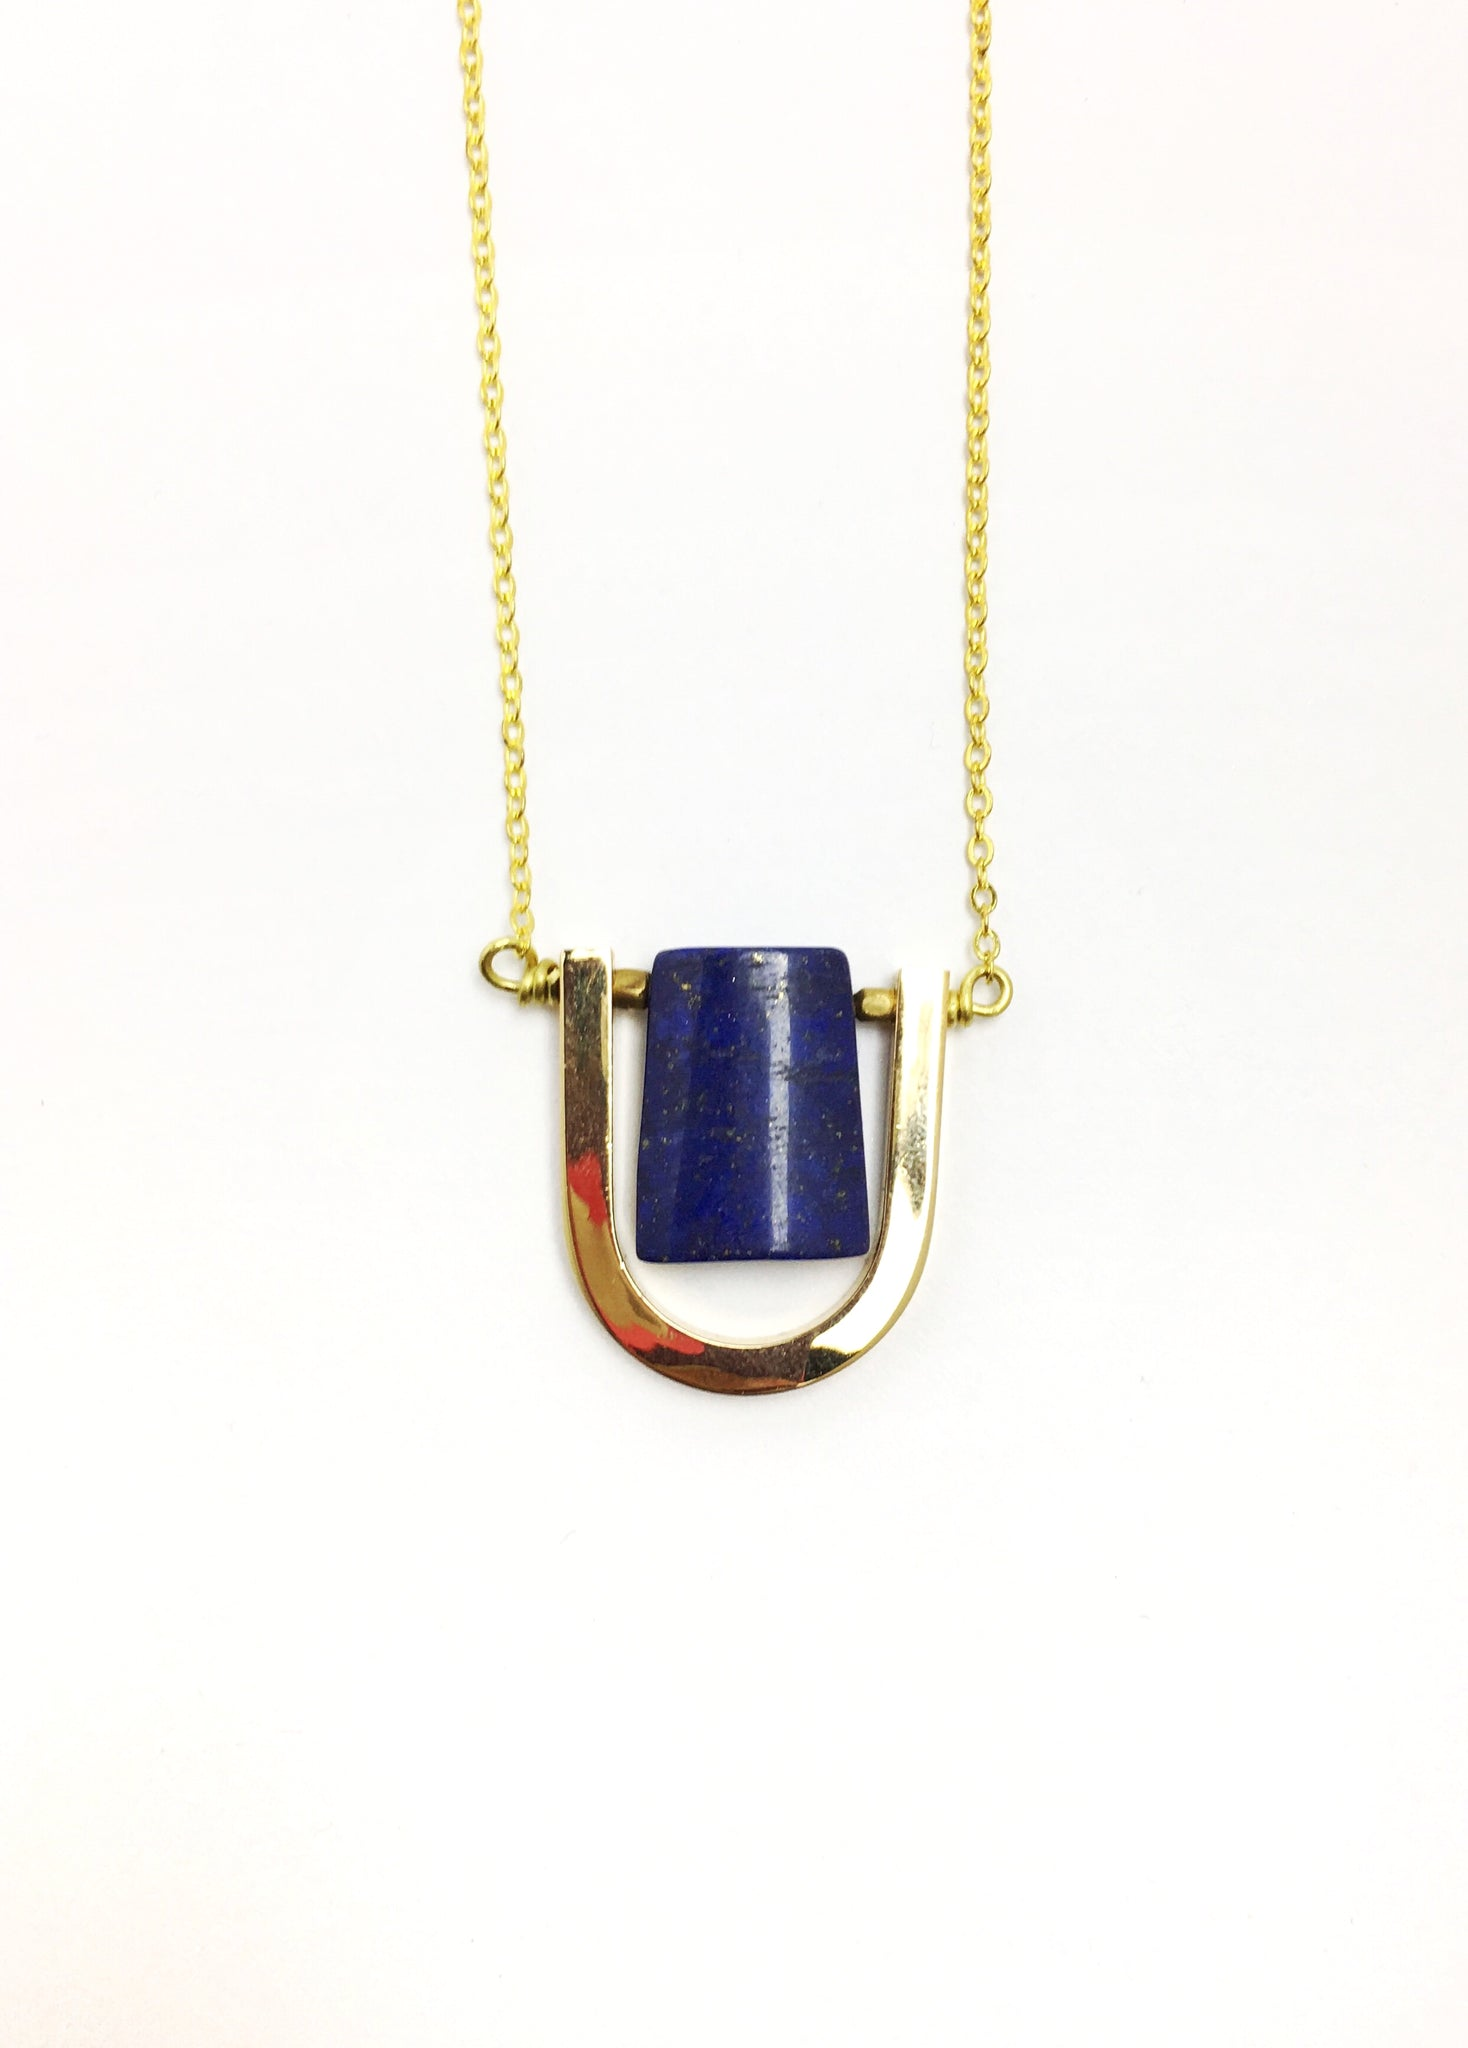 The Luni Lapis Necklace